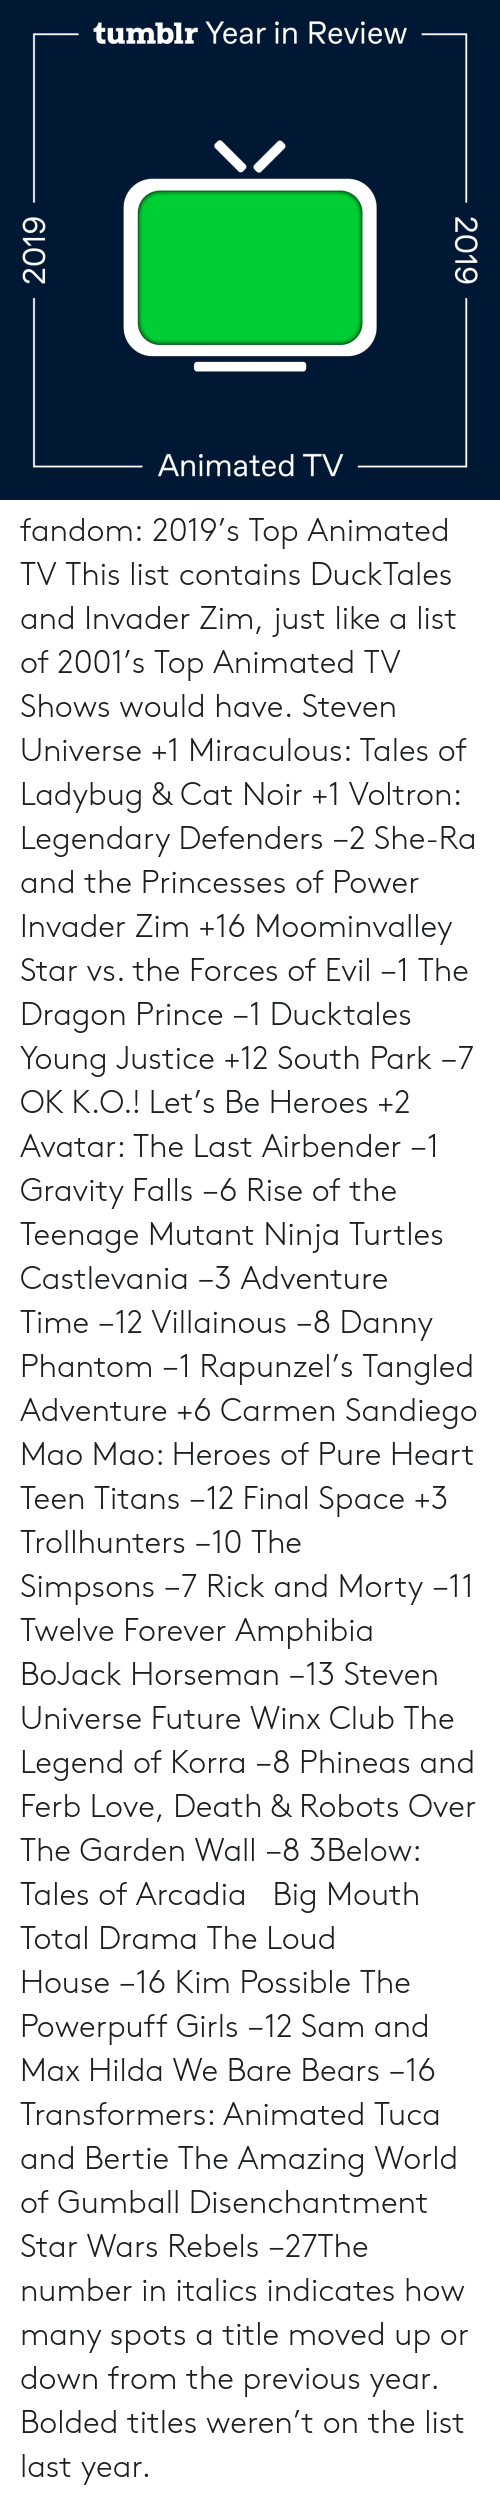 phineas: tumblr Year in Review  Animated TV  2019  2019 fandom:  2019's Top Animated TV  This list contains DuckTales and Invader Zim, just like a list of 2001's Top Animated TV Shows would have.  Steven Universe +1  Miraculous: Tales of Ladybug & Cat Noir +1  Voltron: Legendary Defenders −2  She-Ra and the Princesses of Power   Invader Zim +16  Moominvalley  Star vs. the Forces of Evil −1  The Dragon Prince −1  Ducktales  Young Justice +12  South Park −7  OK K.O.! Let's Be Heroes +2  Avatar: The Last Airbender −1  Gravity Falls −6  Rise of the Teenage Mutant Ninja Turtles  Castlevania −3  Adventure Time −12  Villainous −8  Danny Phantom −1  Rapunzel's Tangled Adventure +6  Carmen Sandiego  Mao Mao: Heroes of Pure Heart  Teen Titans −12  Final Space +3  Trollhunters −10  The Simpsons −7  Rick and Morty −11  Twelve Forever  Amphibia  BoJack Horseman −13  Steven Universe Future  Winx Club  The Legend of Korra −8  Phineas and Ferb  Love, Death & Robots  Over The Garden Wall −8  3Below: Tales of Arcadia    Big Mouth  Total Drama  The Loud House −16  Kim Possible  The Powerpuff Girls −12  Sam and Max  Hilda  We Bare Bears −16  Transformers: Animated  Tuca and Bertie  The Amazing World of Gumball  Disenchantment Star Wars Rebels −27The number in italics indicates how many spots a title moved up or down from the previous year. Bolded titles weren't on the list last year.